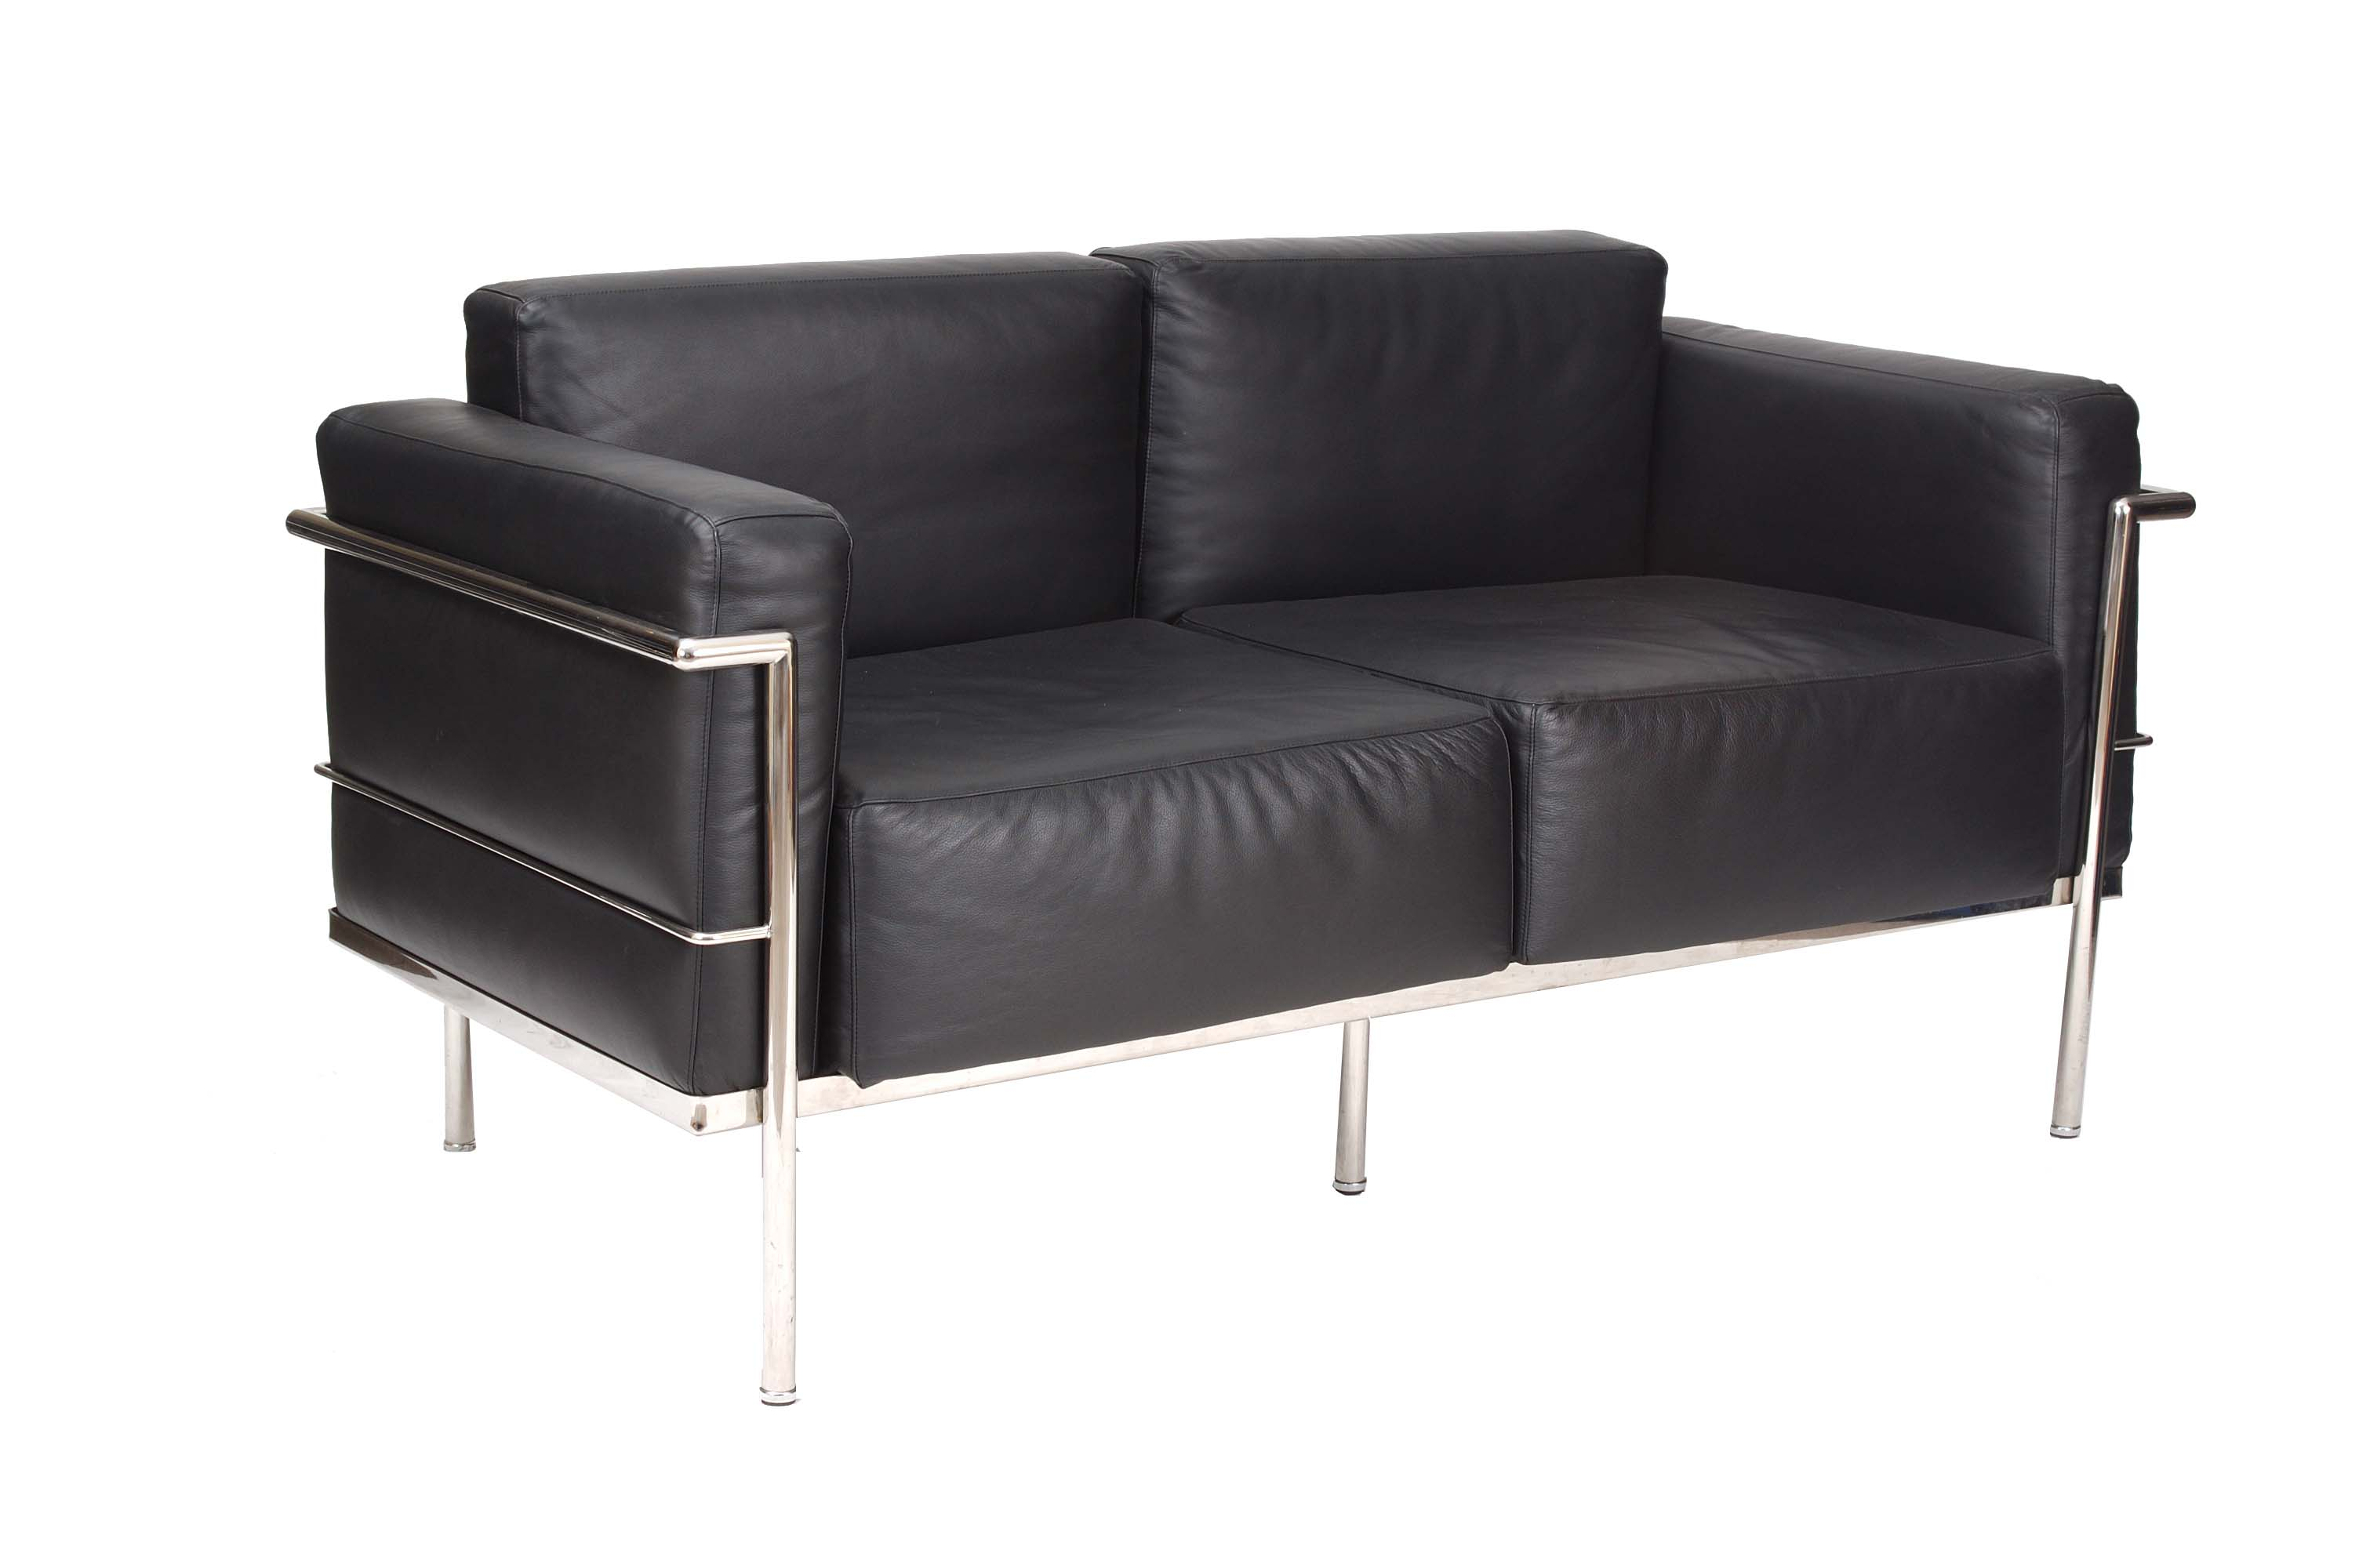 Danische sofas hamburg hamburg coffee table josbo for Sofa hamburg